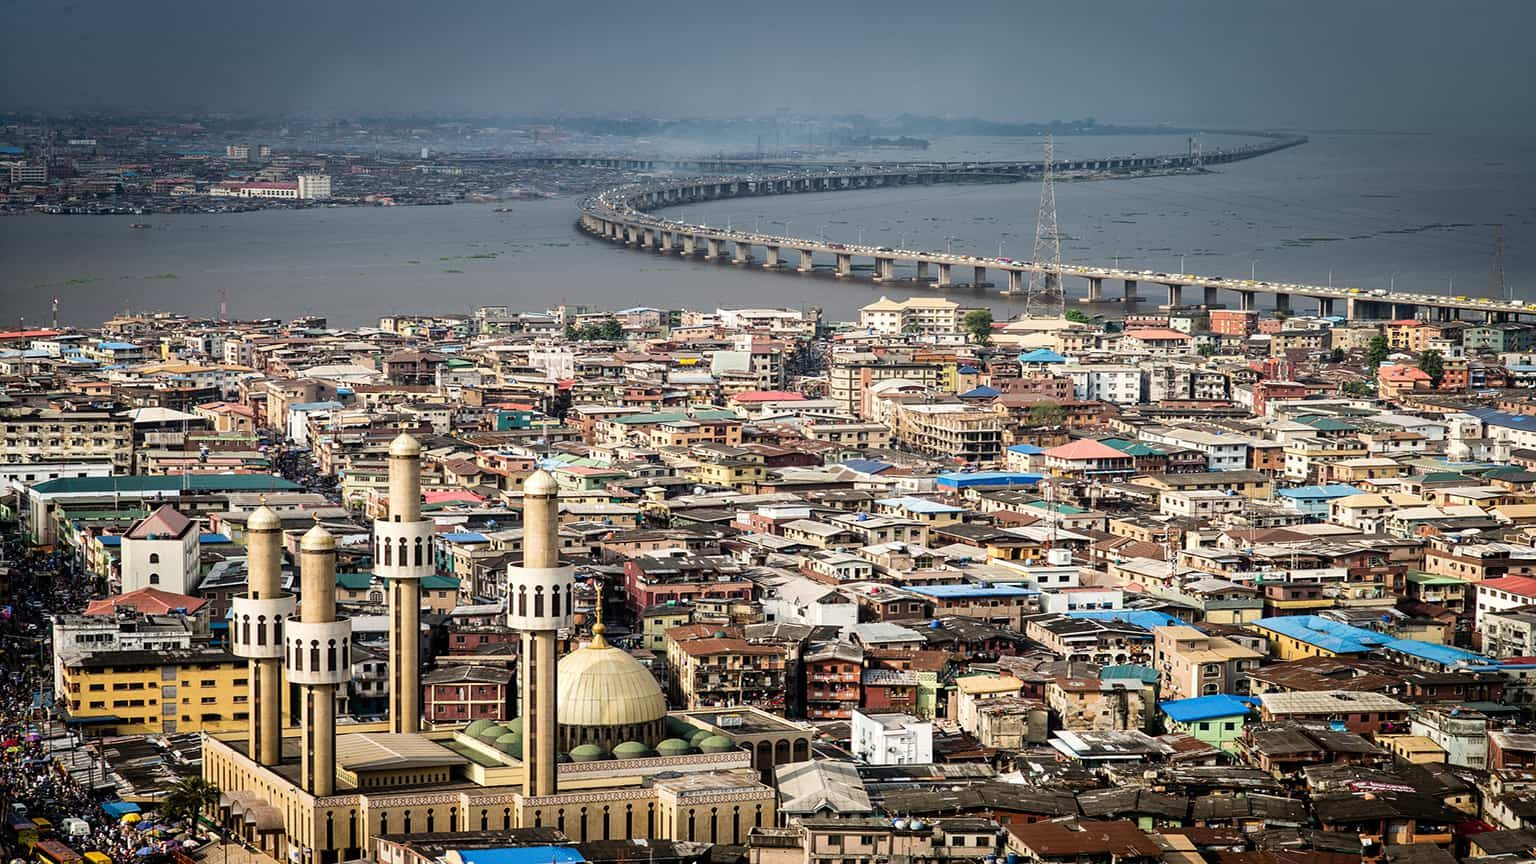 High angle view of buildings in Nigeria